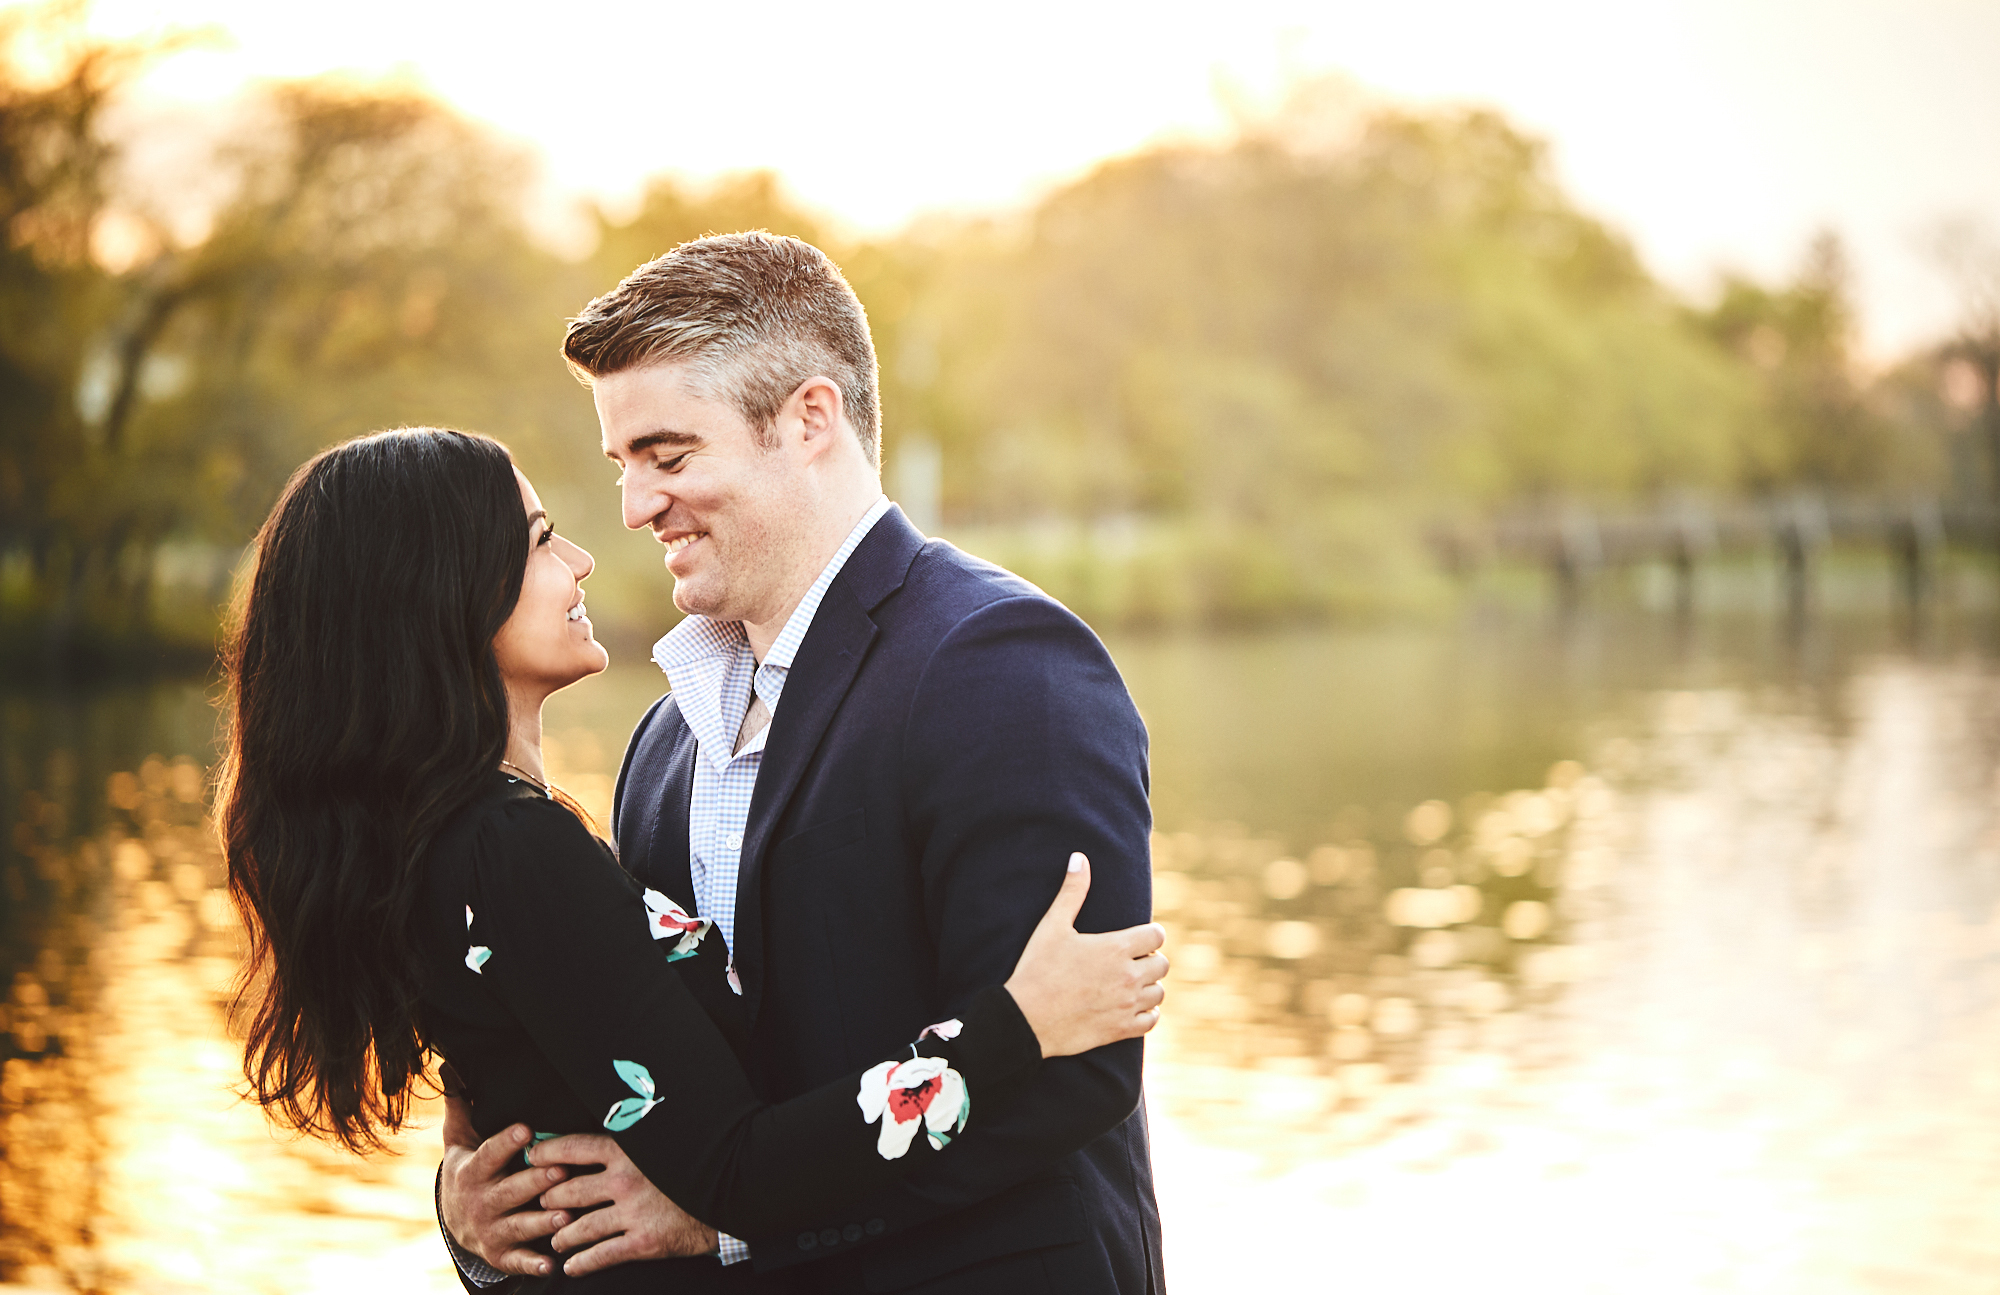 190516_SummerSpringLakeNJDivineParkEngagementSession_By_BriJohnsonWeddings0013.jpg